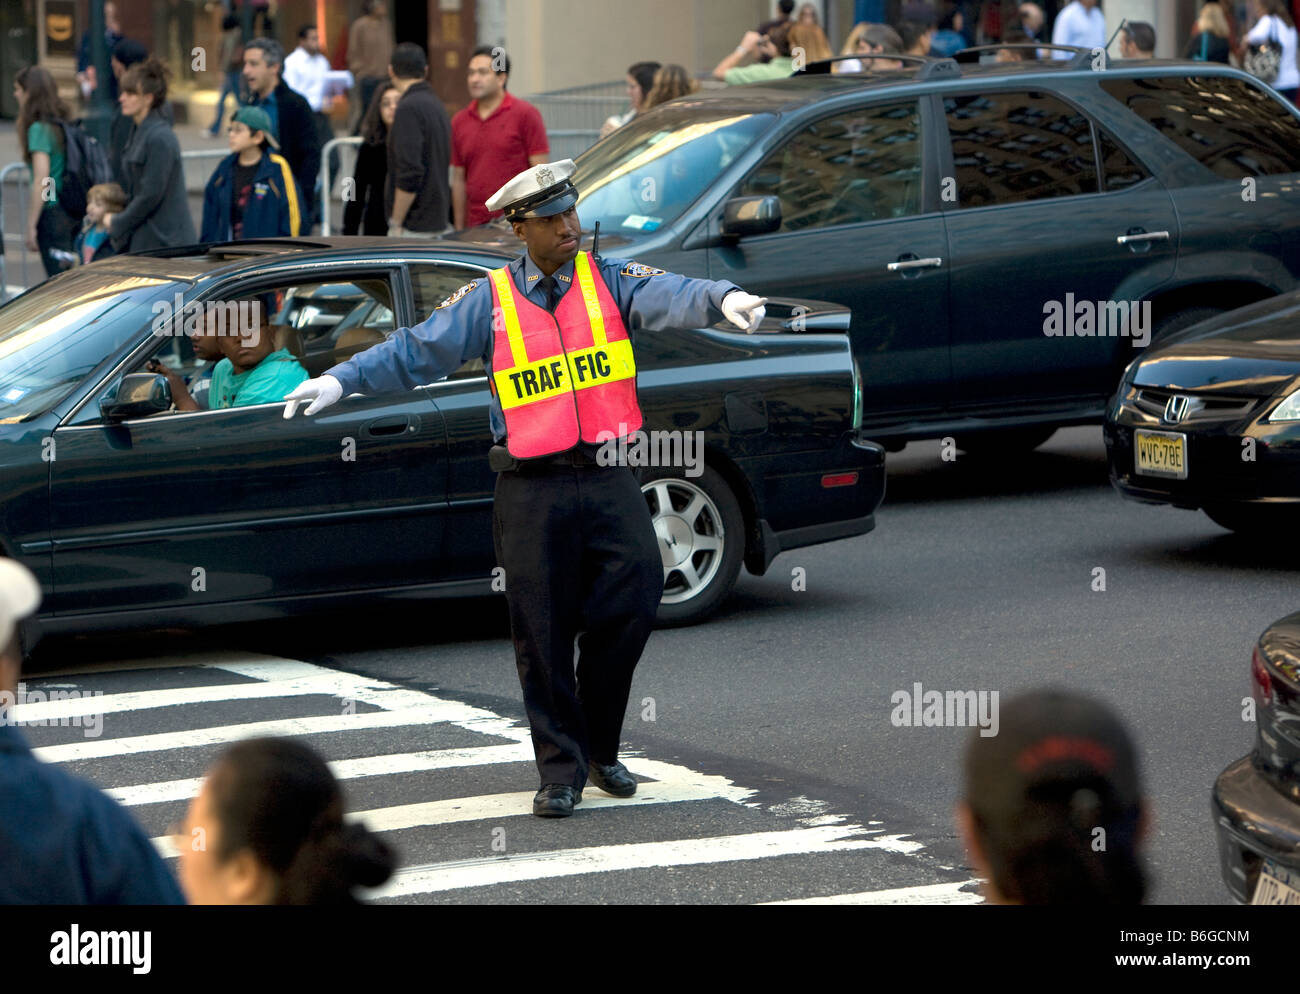 Traffic cop 42nd Street and Fifth Avenue New York City - Stock Image